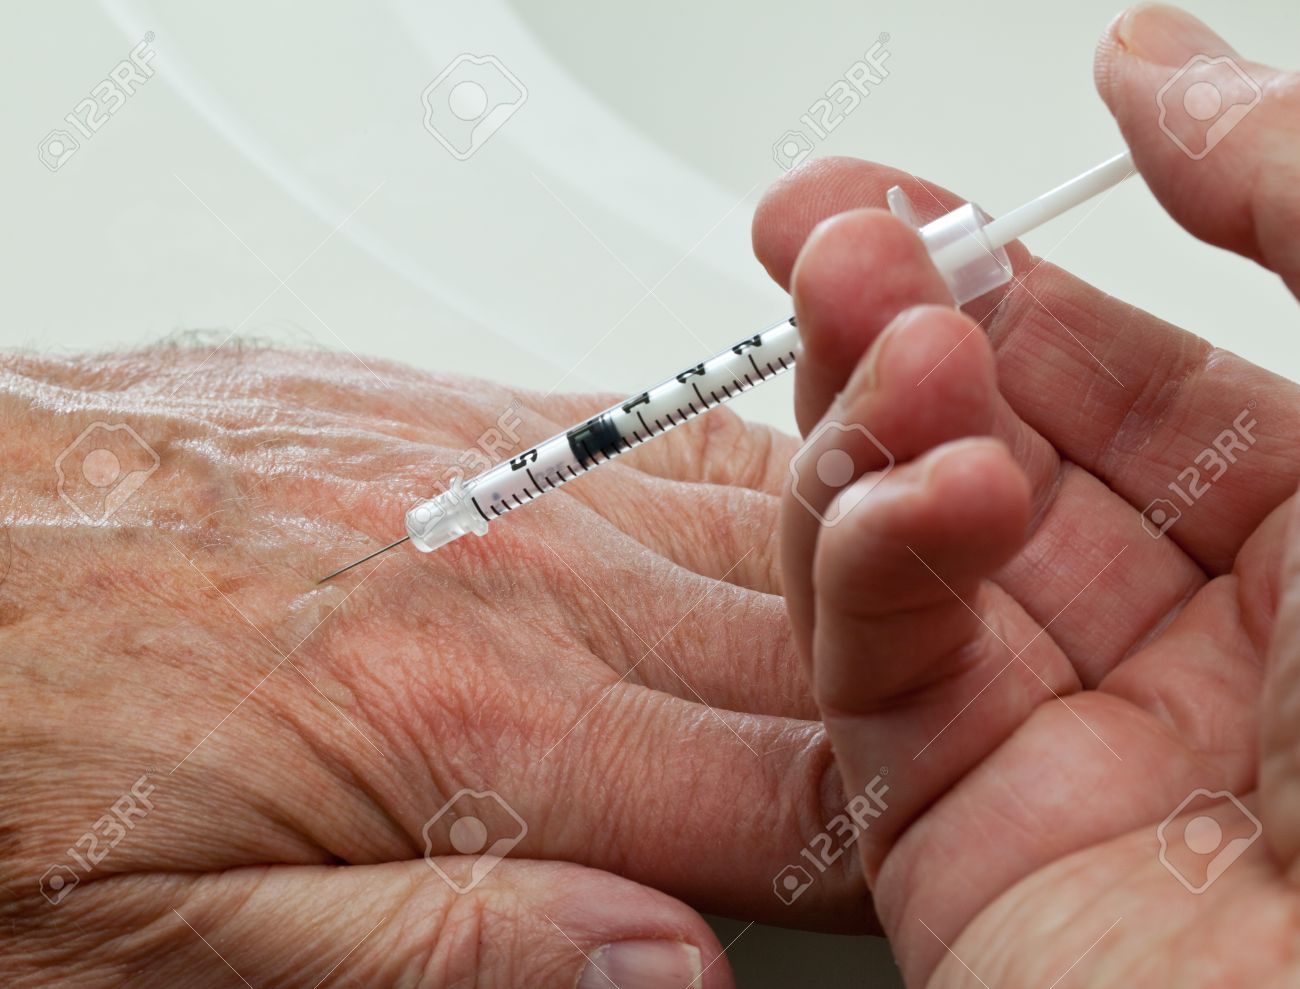 Hypodermic Needle Injection